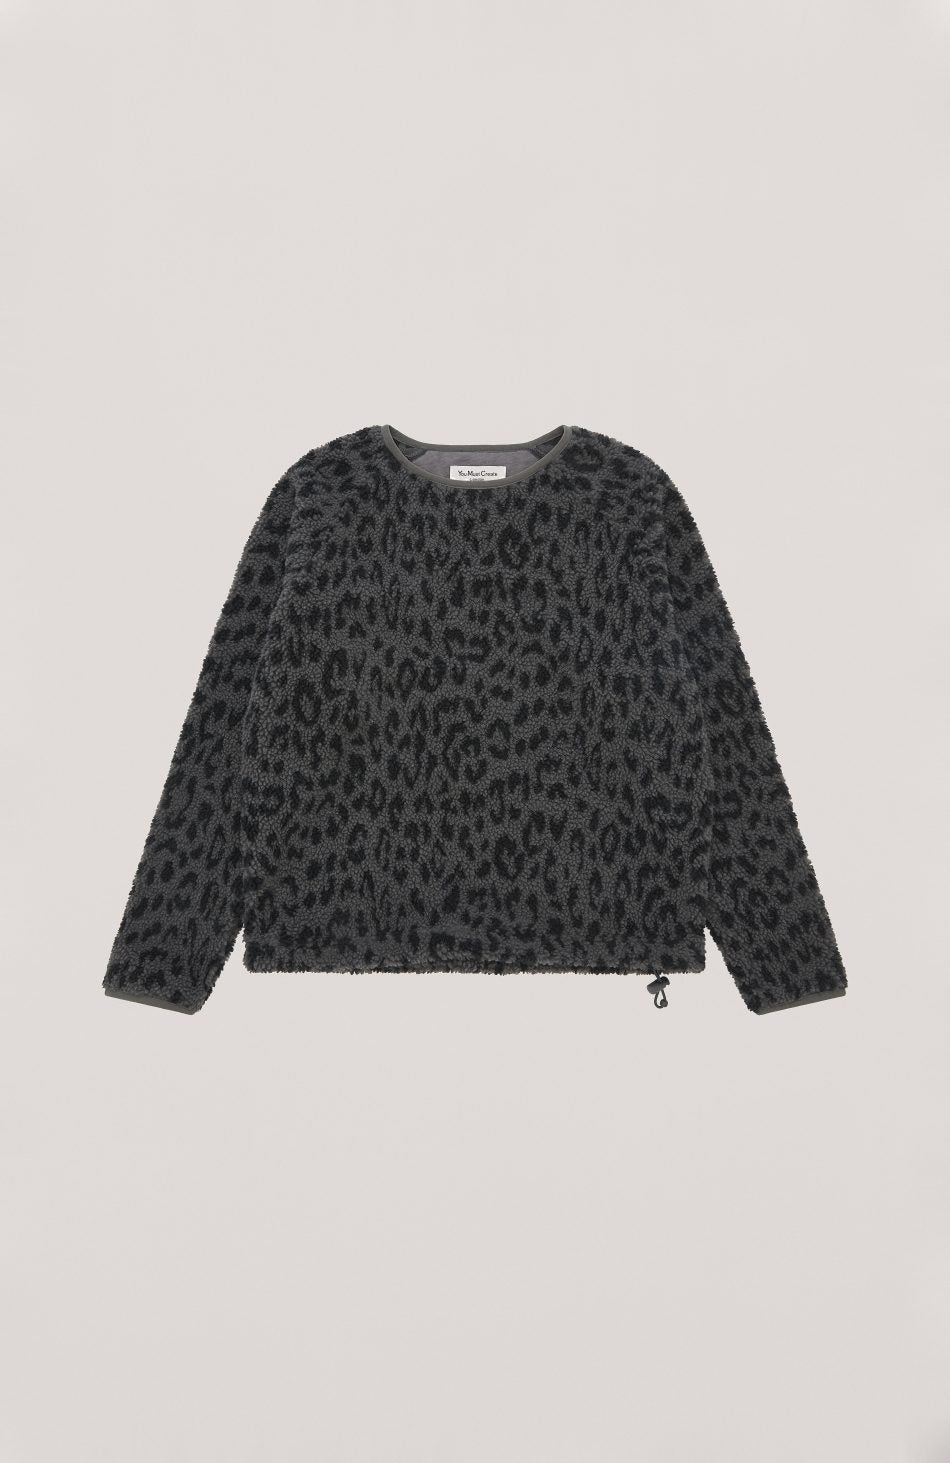 Deliverance Leopard Fleece in Grey and Navy